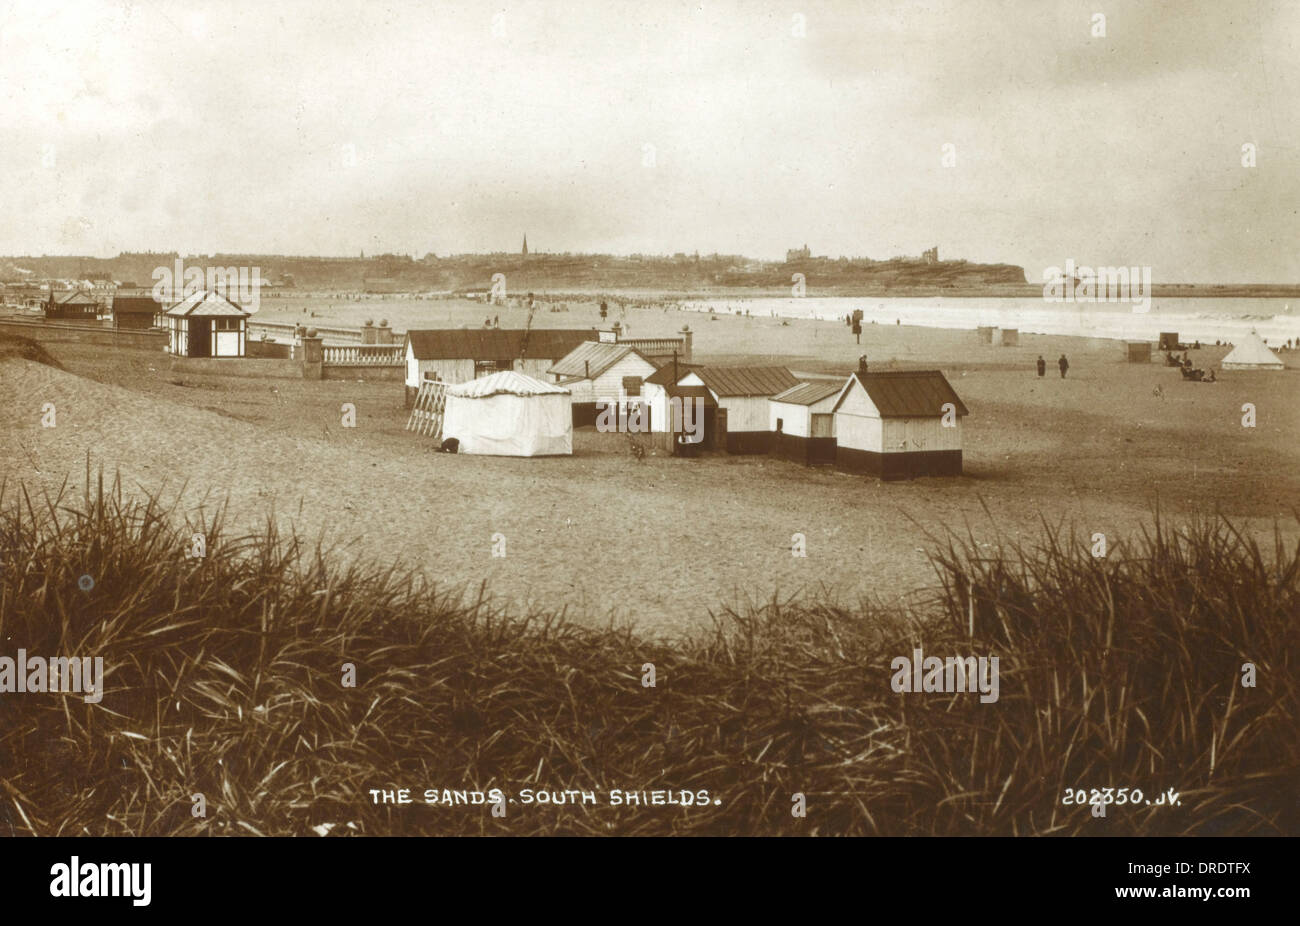 South Shields, Tyne and Wear - The Sands - Stock Image